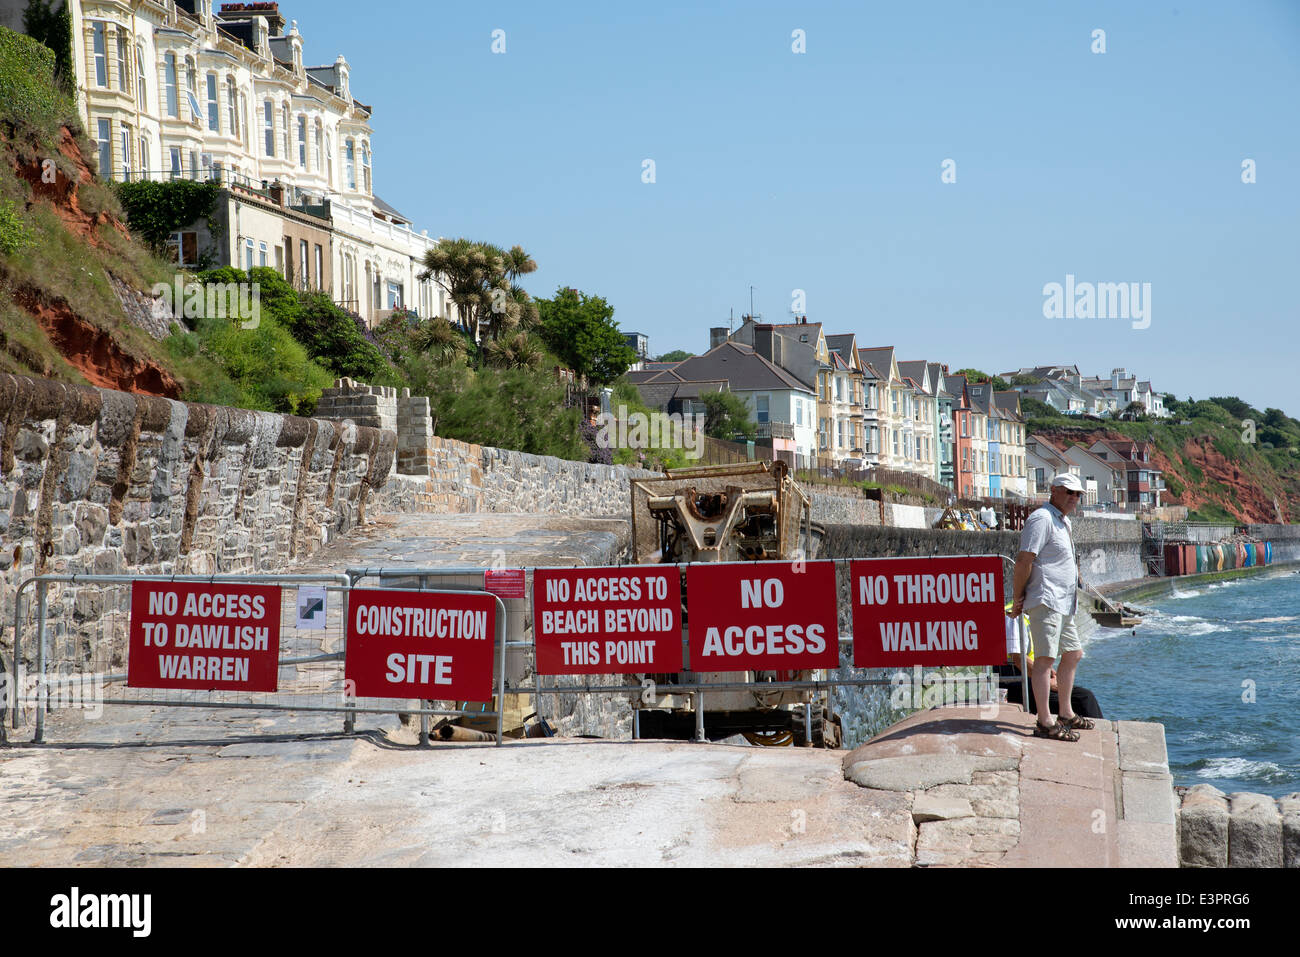 Rebuilding seawall at Dawlish Devon UK No Access signs on the seafront June 2014 - Stock Image